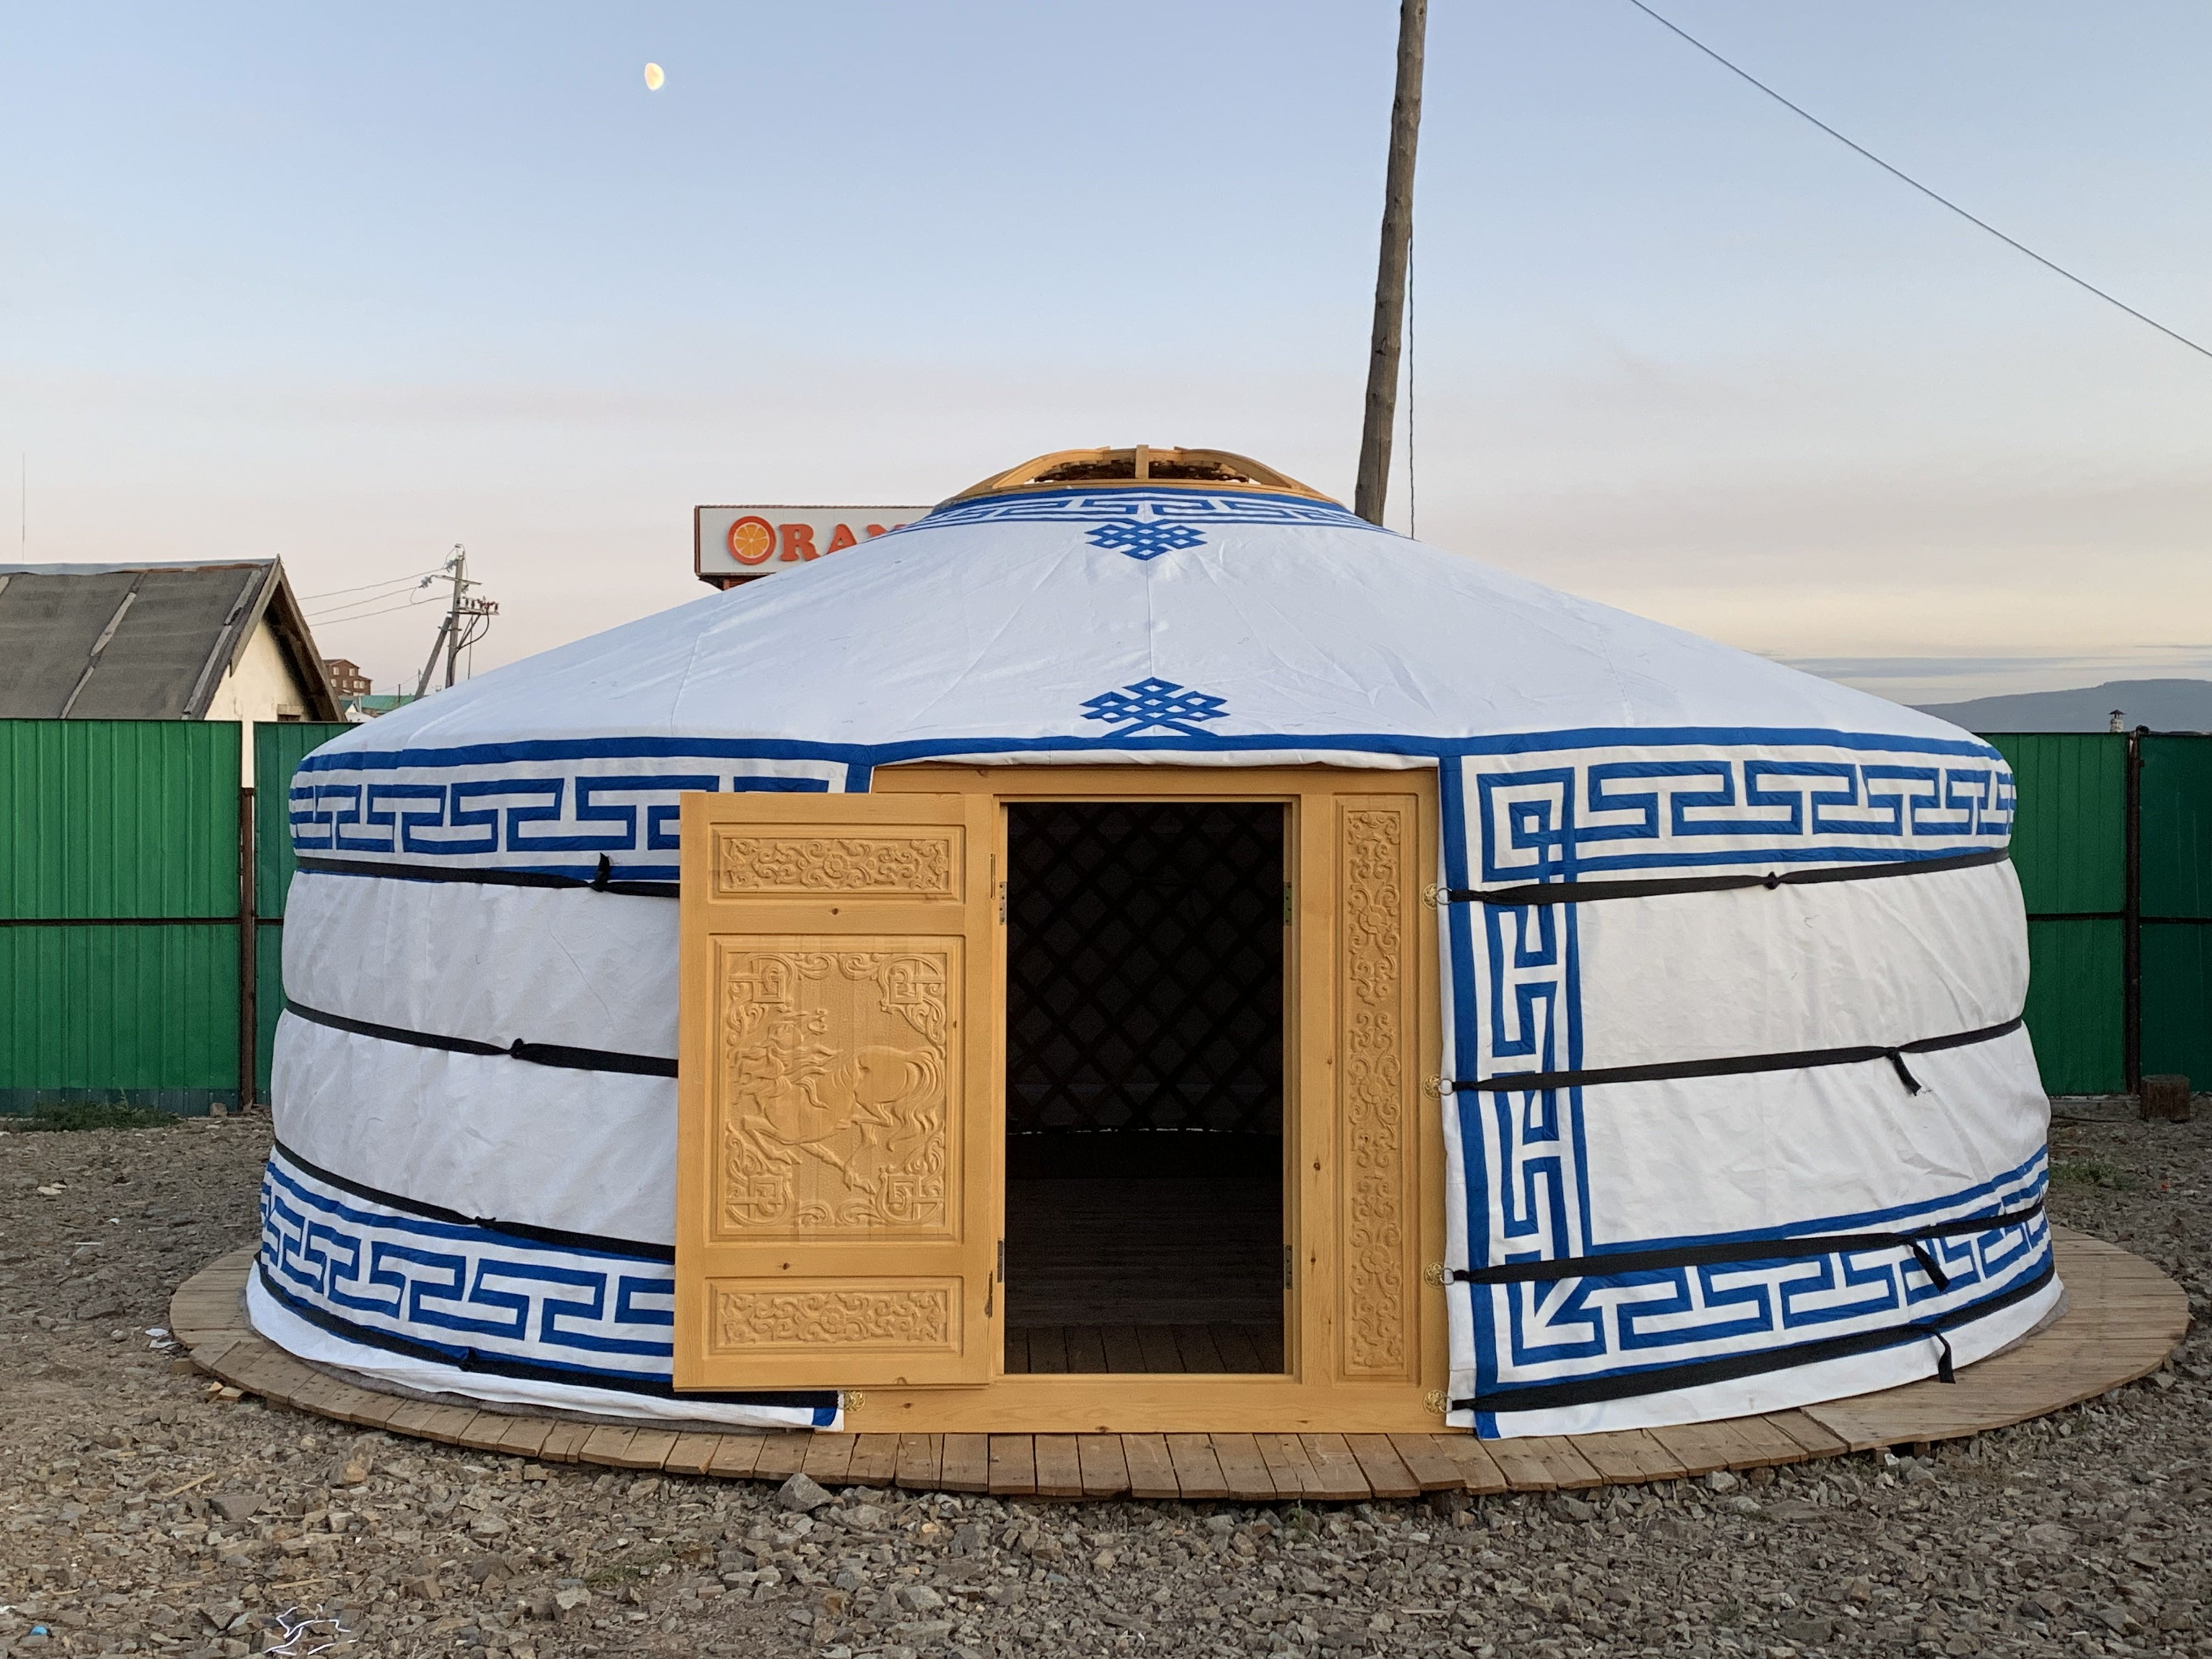 A yurt with a finely carved wooden door and blue accents